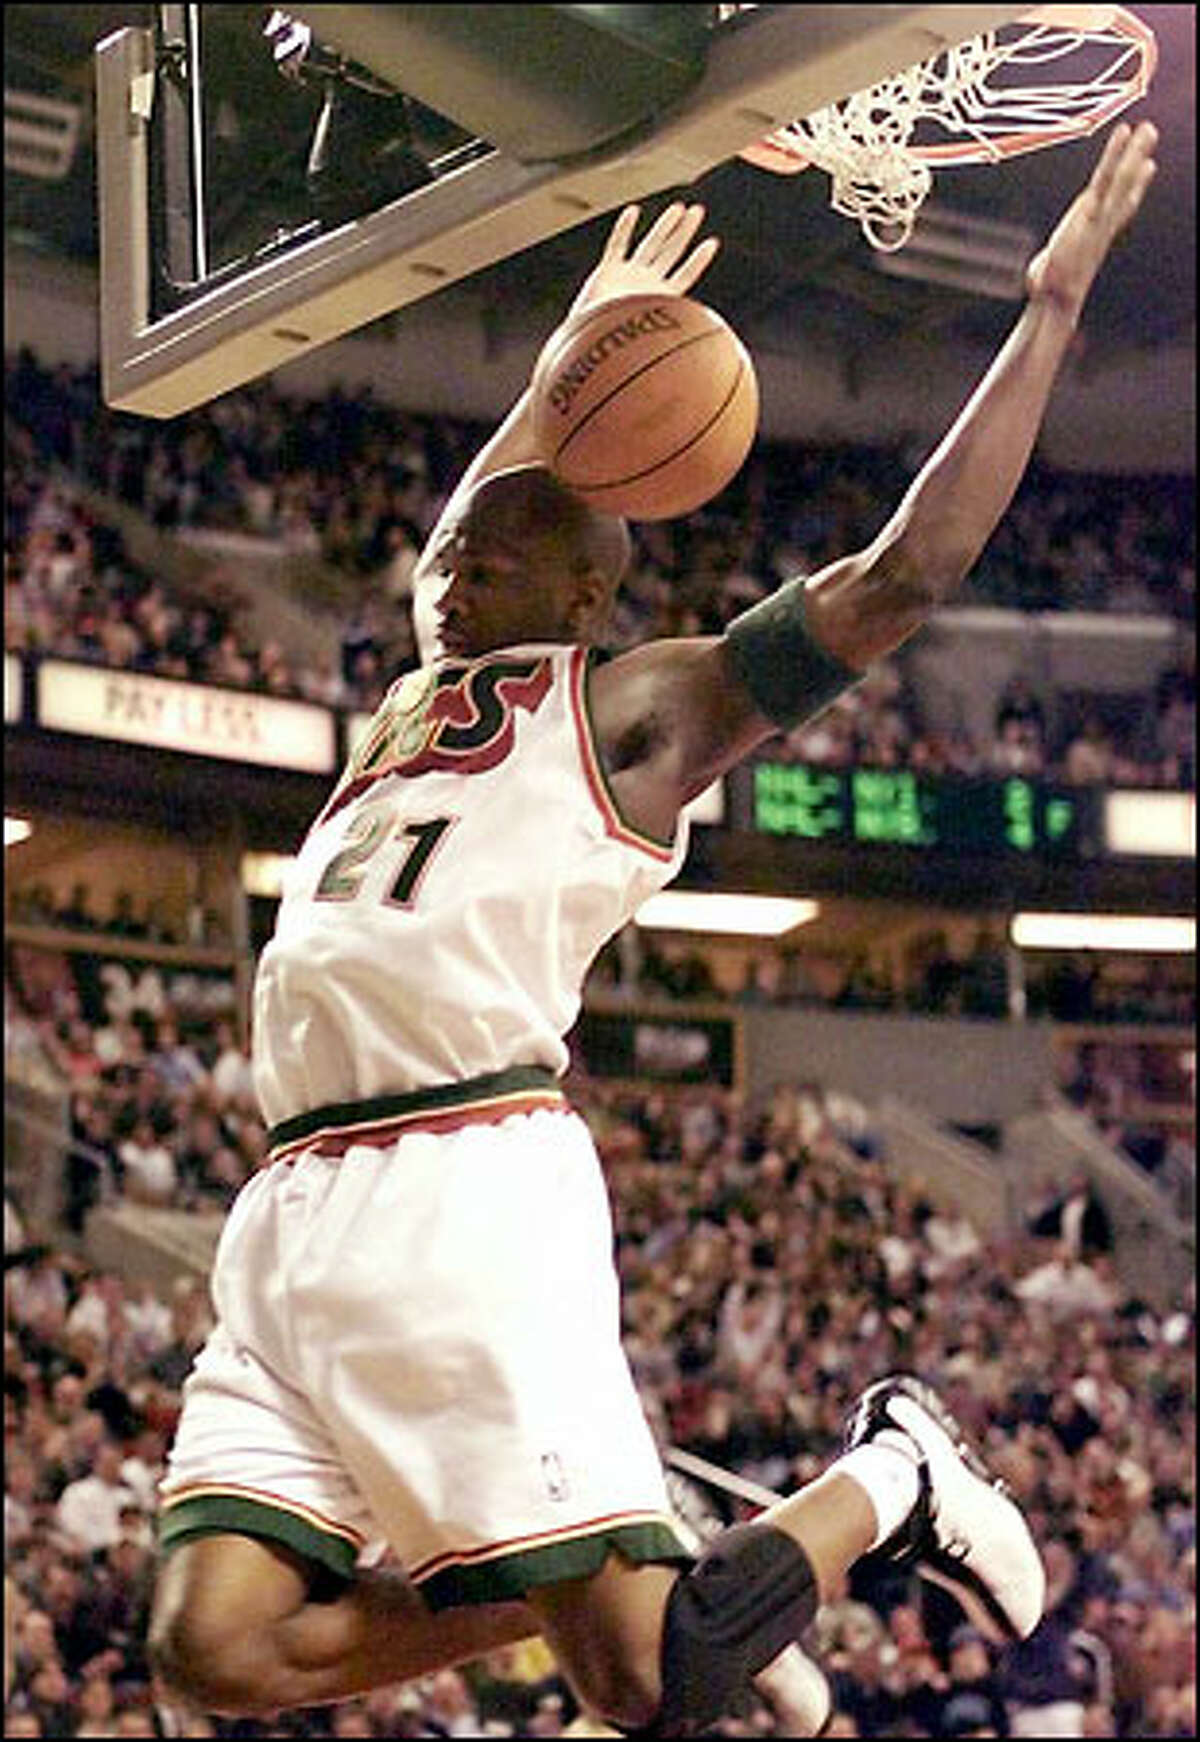 Ruben Patterson, who scored 19 points on 7-for-11 shooting, dunks against the Timberwolves.